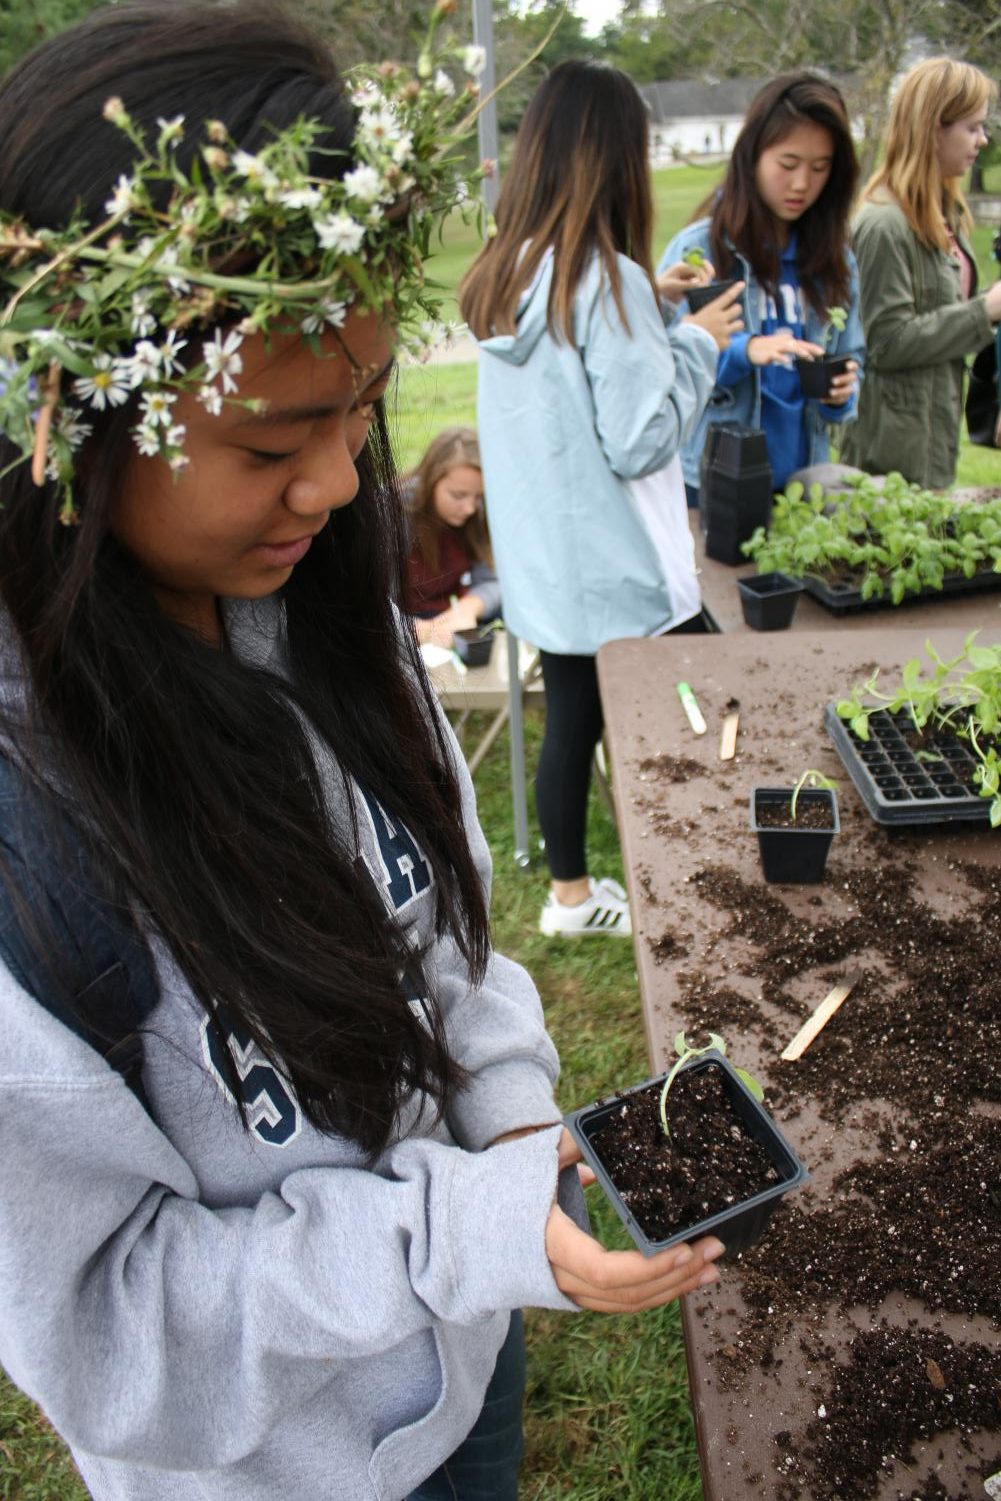 The annual Fall Harvest Festival held at University farms